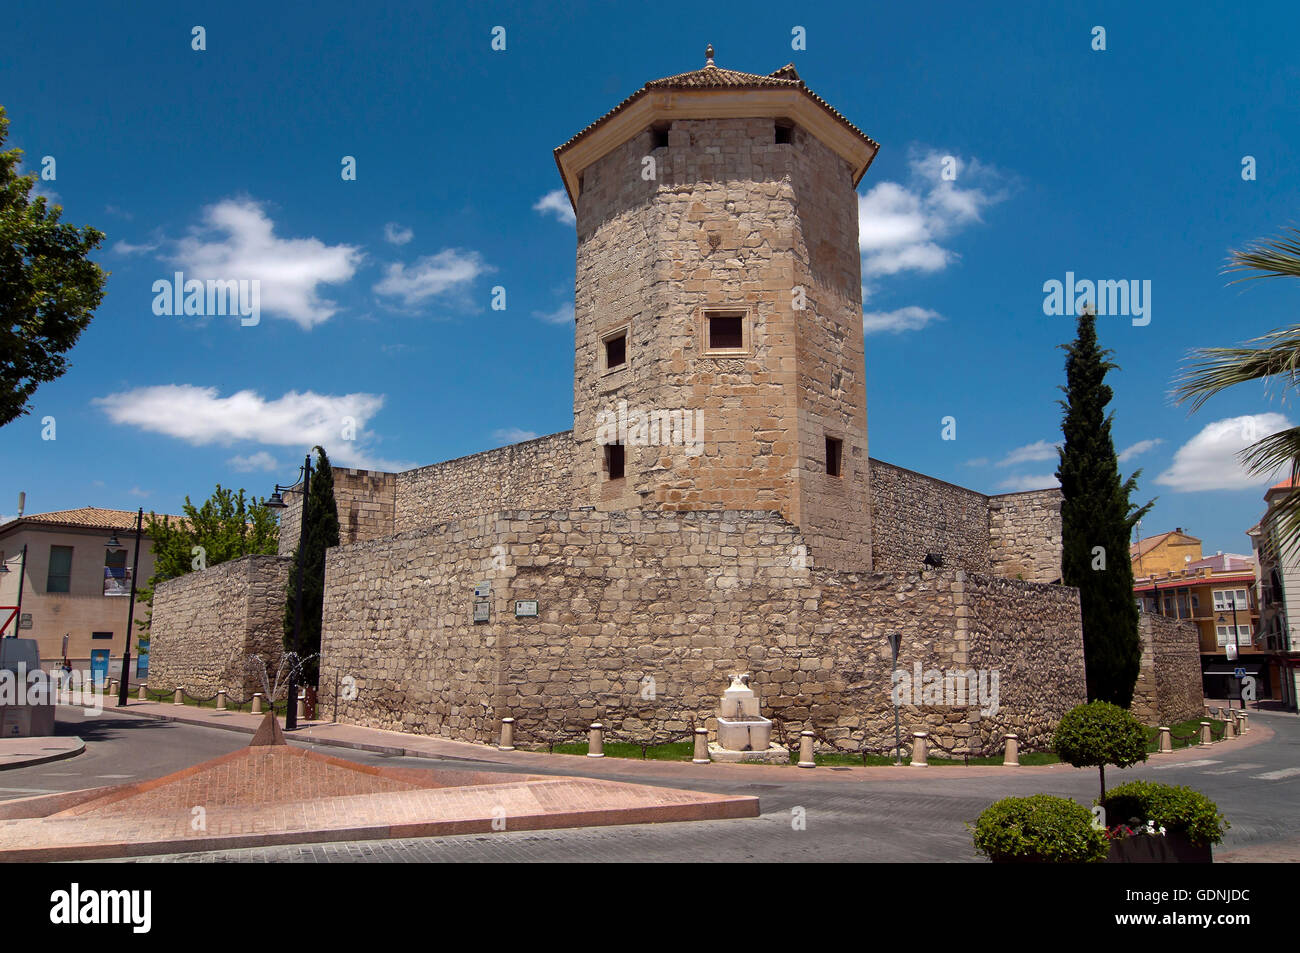 The Moral Castle - 11th century, Lucena, Cordoba province, Region of Andalusia, Spain, Europe - Stock Image